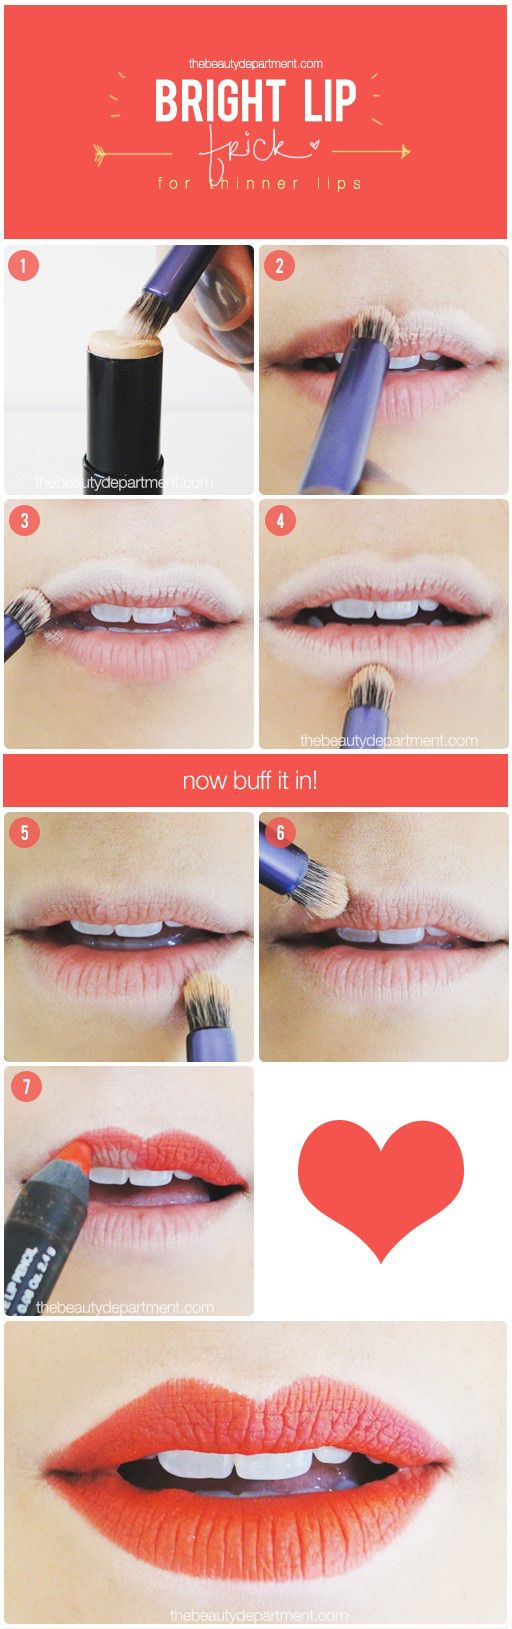 best beauty images on pinterest beauty hacks beauty tips and